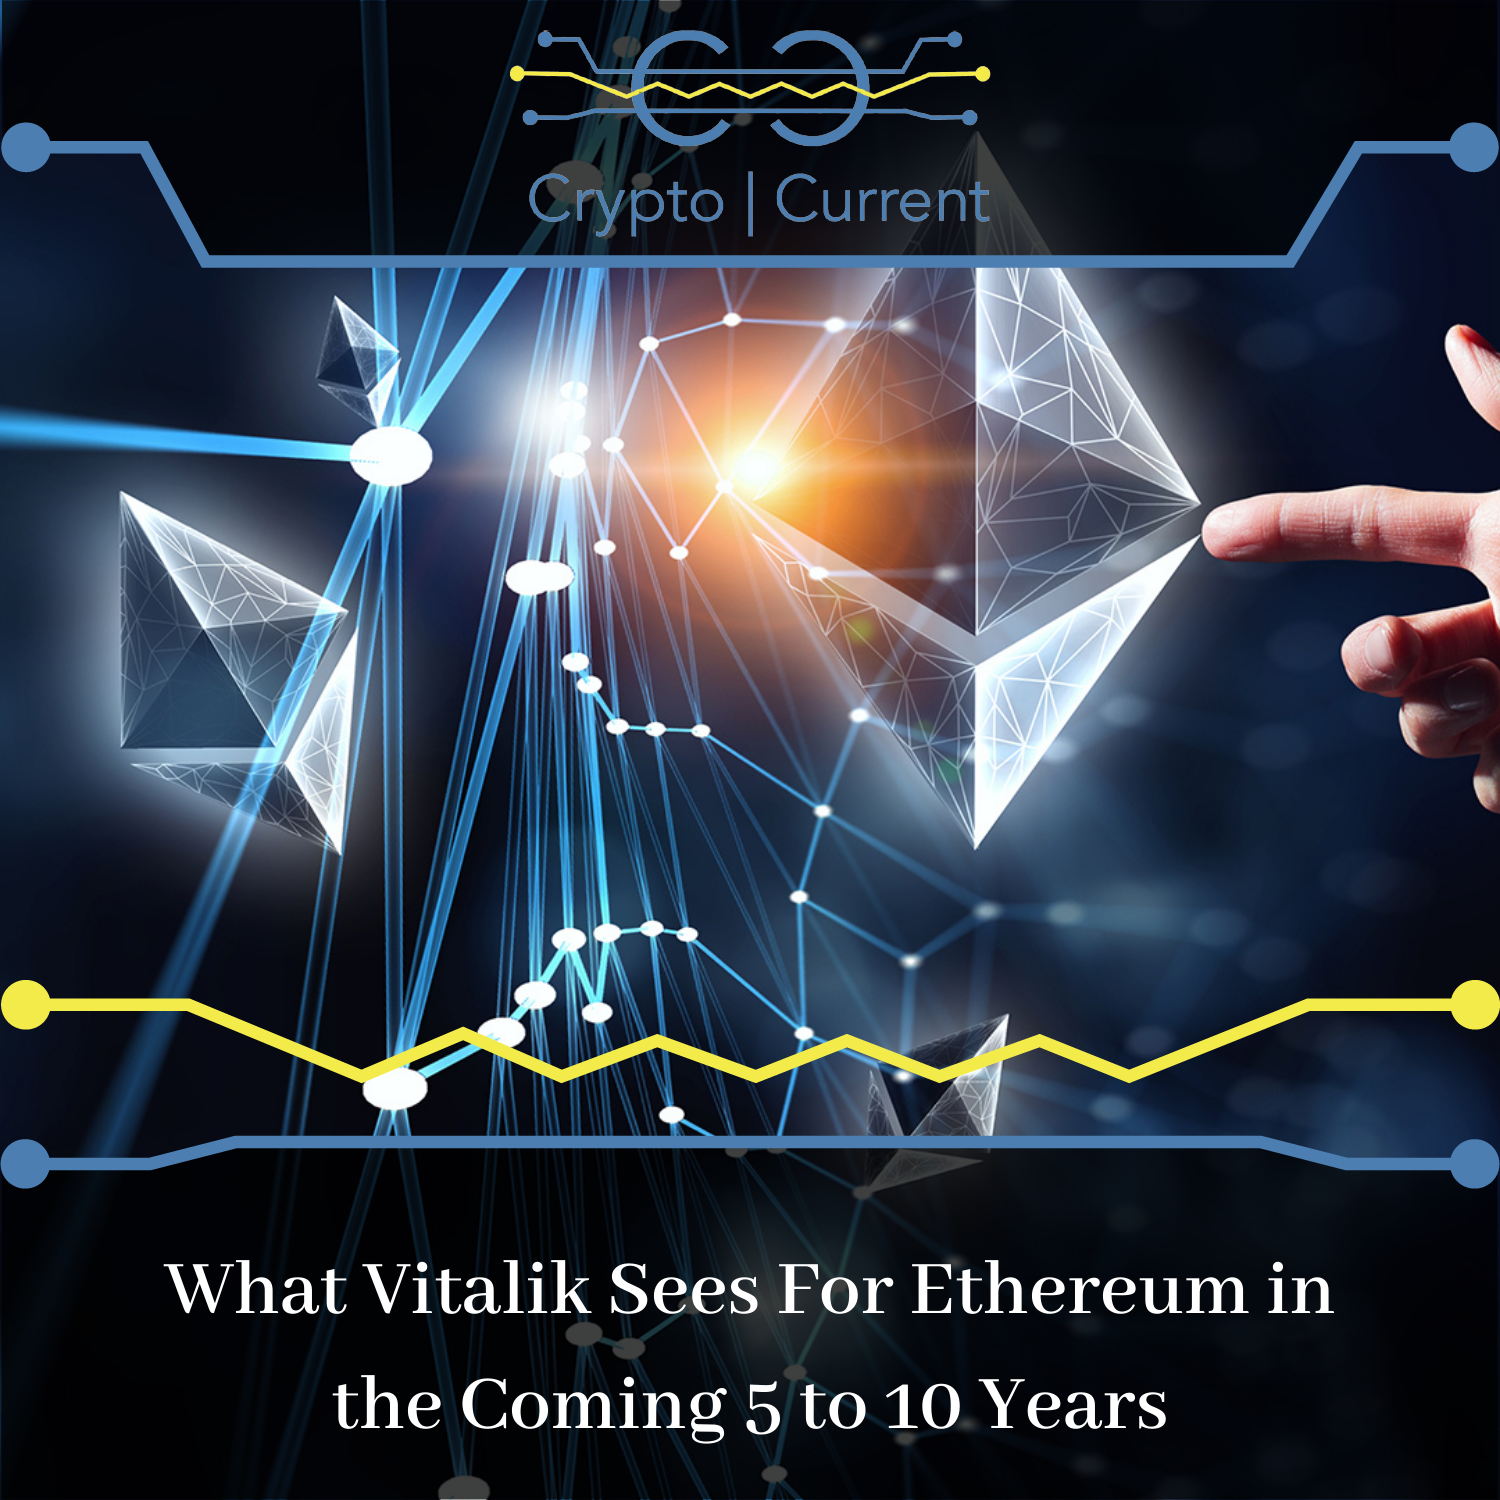 What Vitalik Sees For Ethereum in the Coming 5 to 10 Years